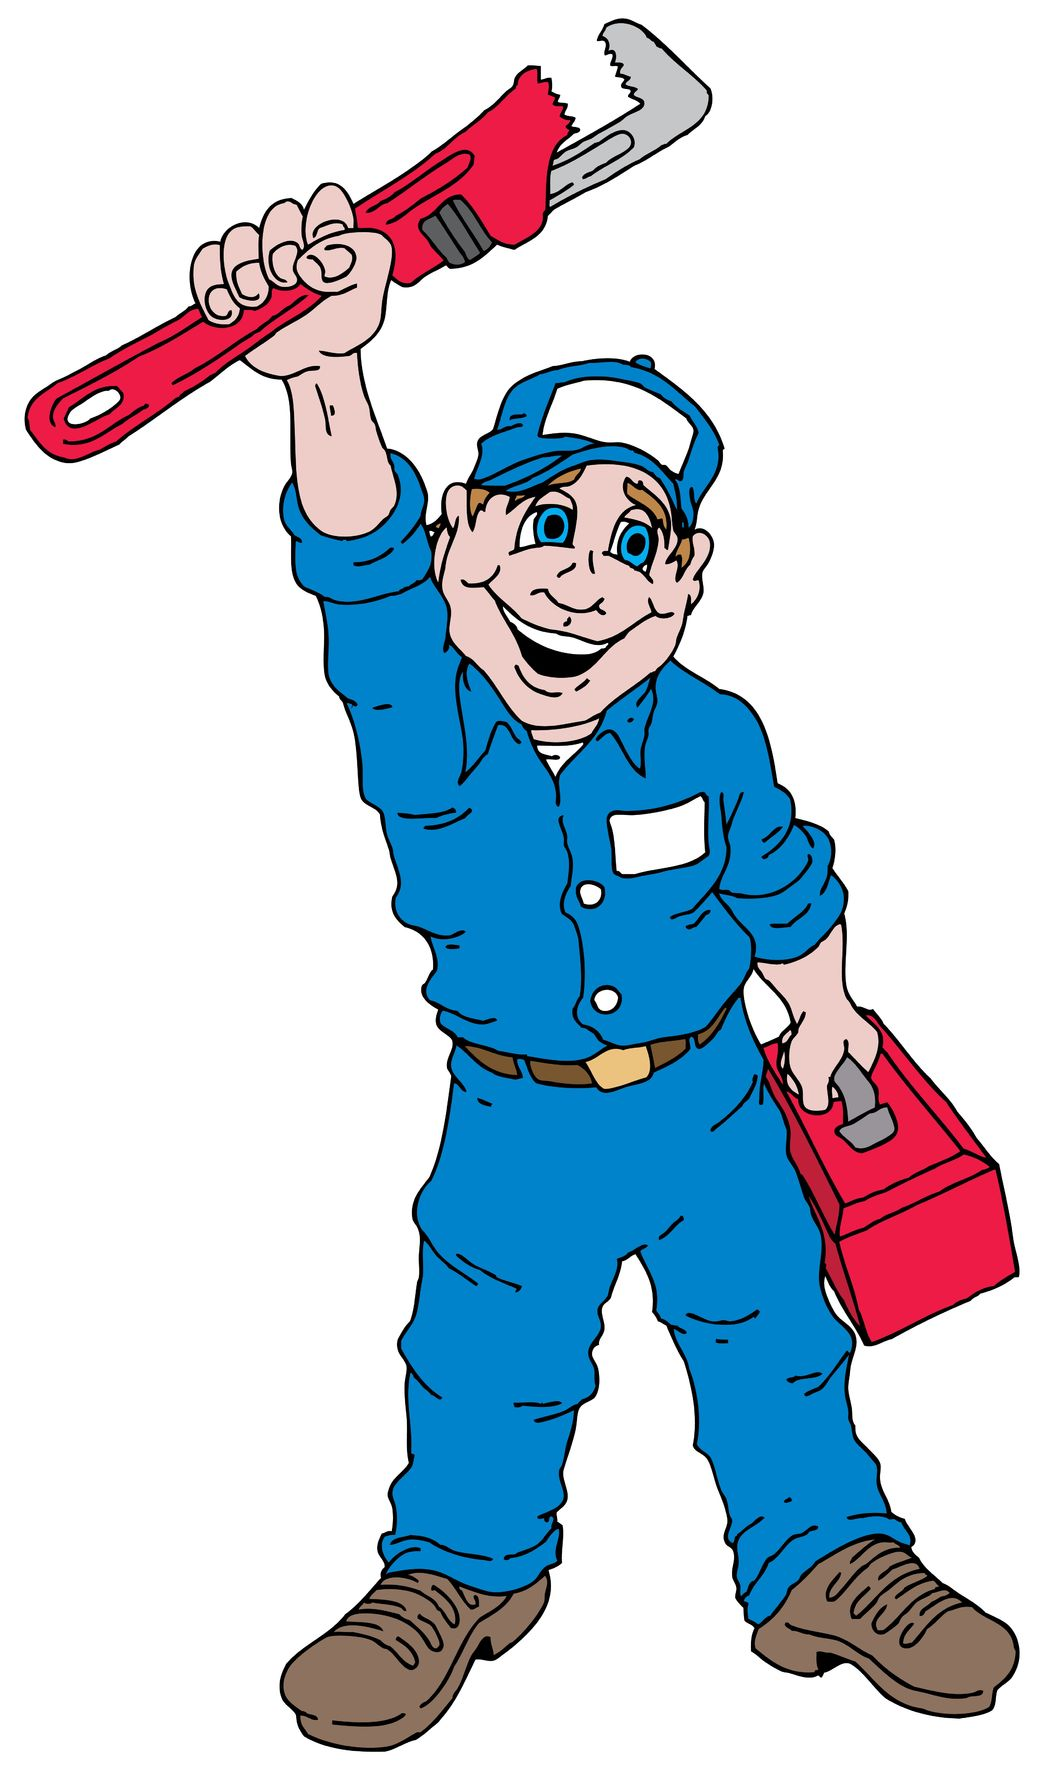 Plumbing images clipart graphic library library Plumbing Clipart - Clipart Kid graphic library library